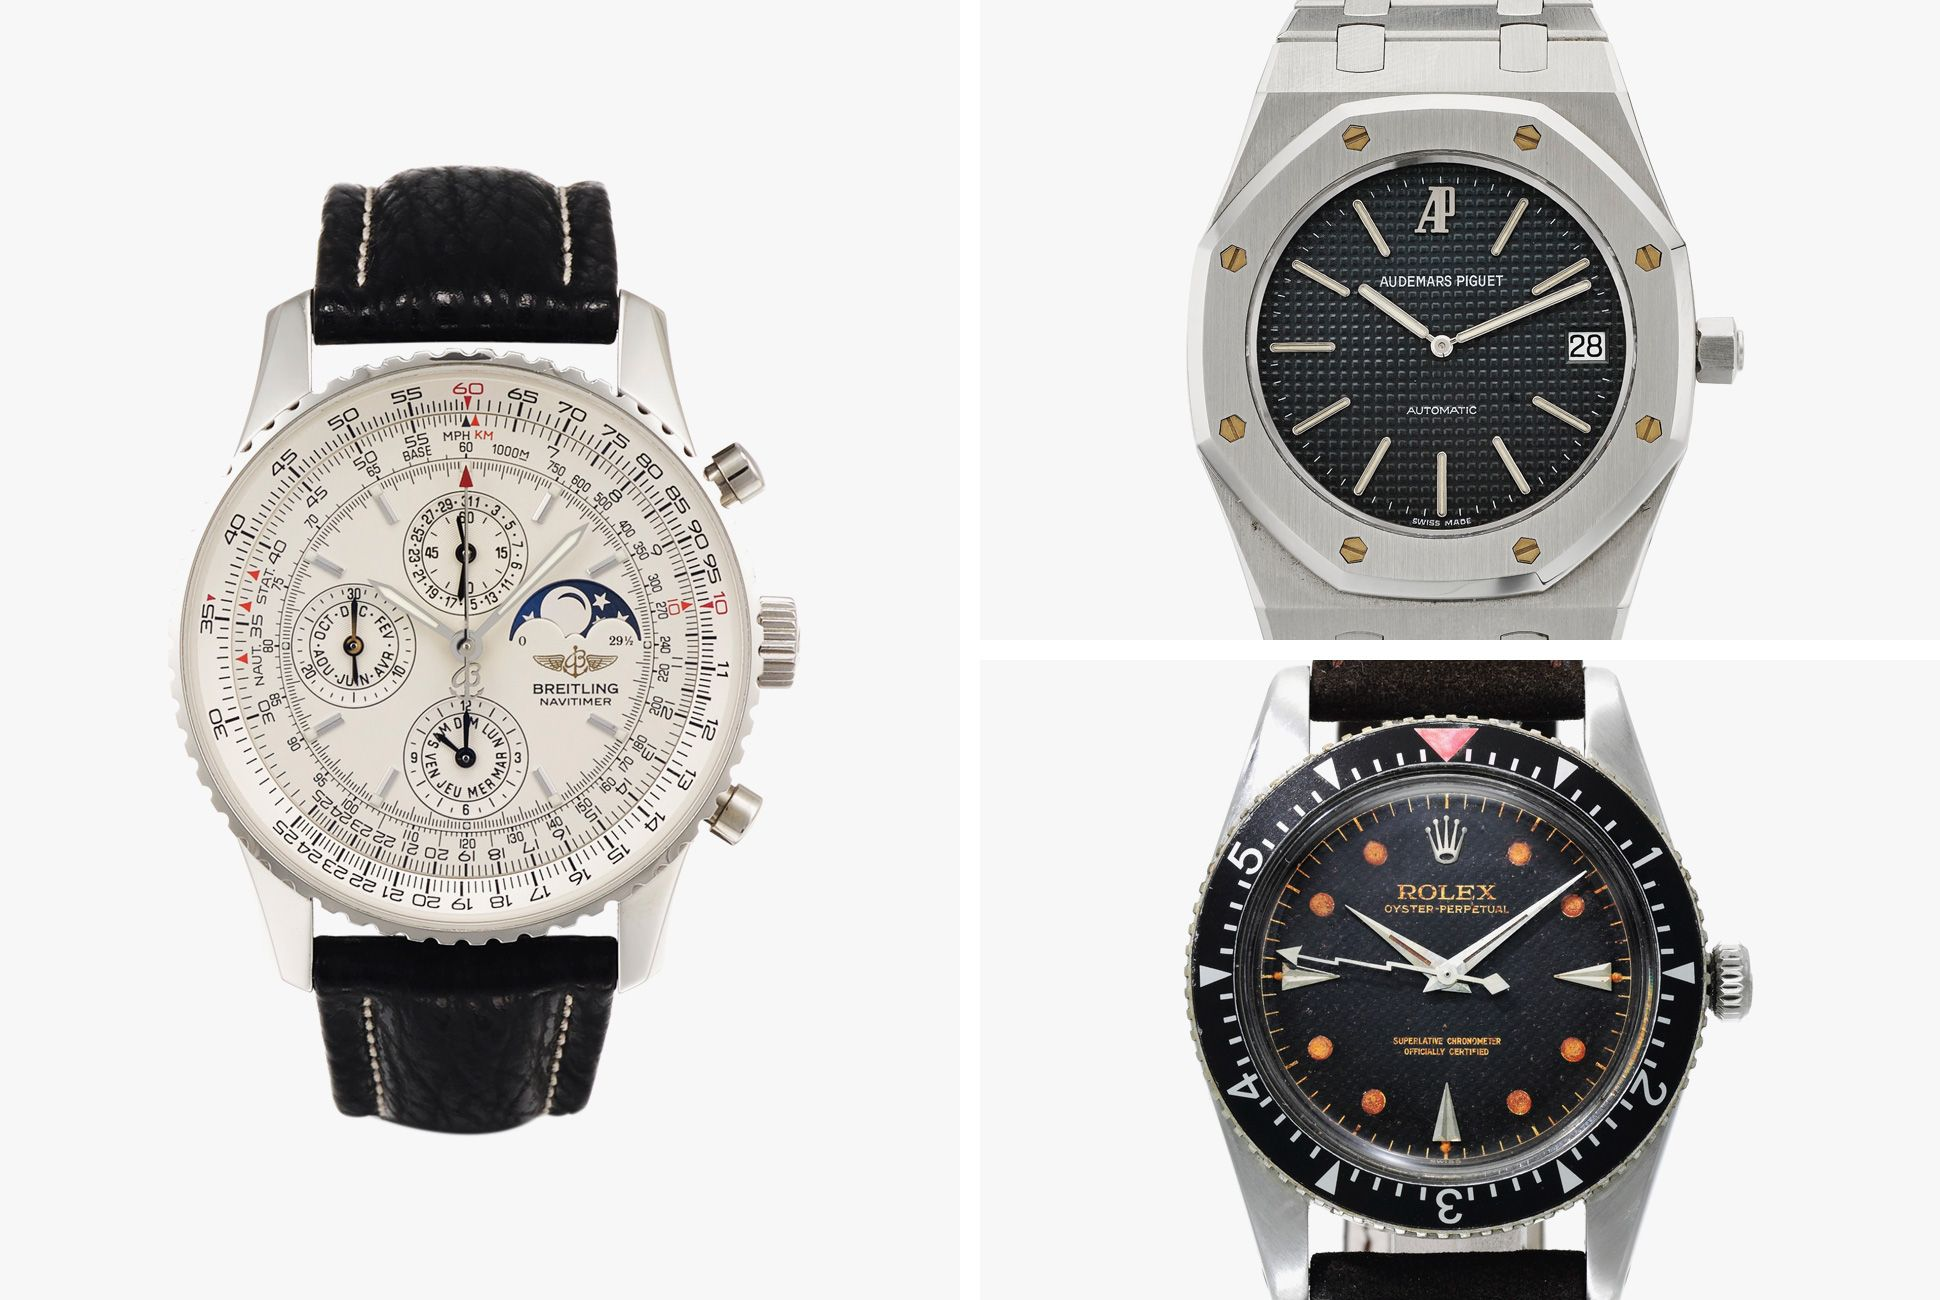 efbf6d087f1 A Quick Guide to May Geneva Watch Auctions 2017 • Gear Patrol